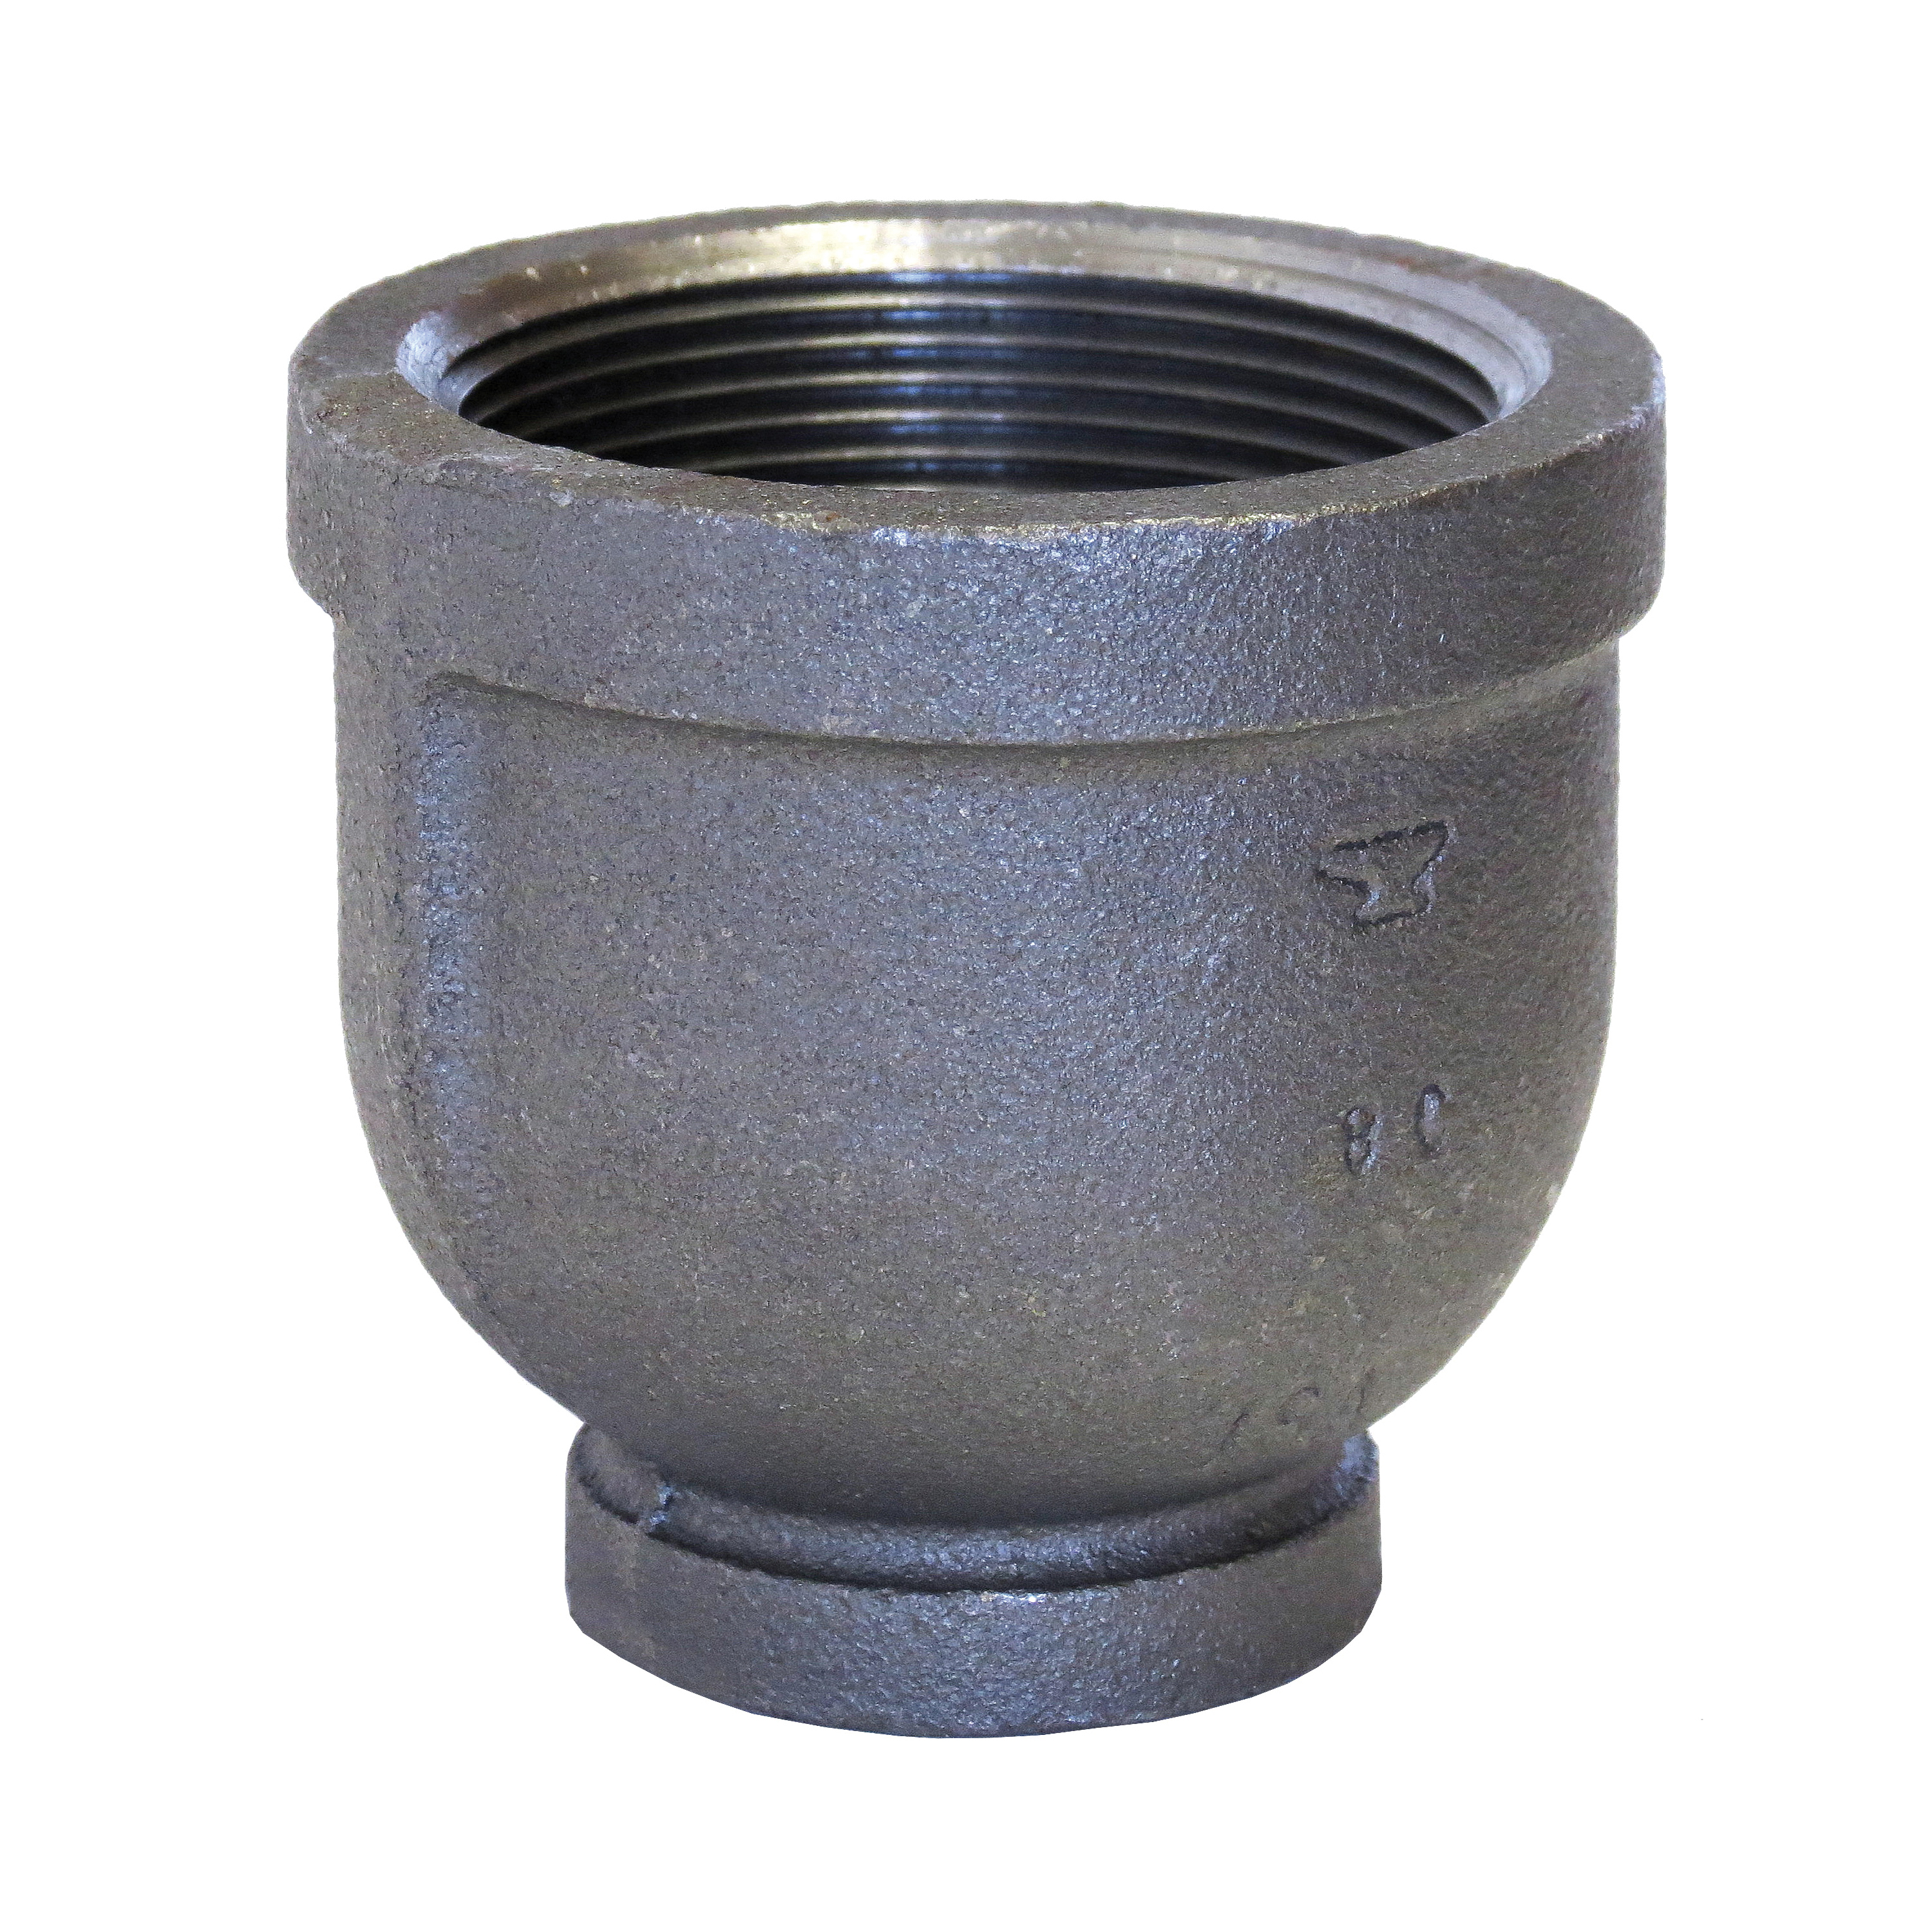 Anvil® 0811092618 Pipe Reducing Coupling, 4 x 3 in Nominal, 150 lb, Malleable Iron, Galvanized, Import